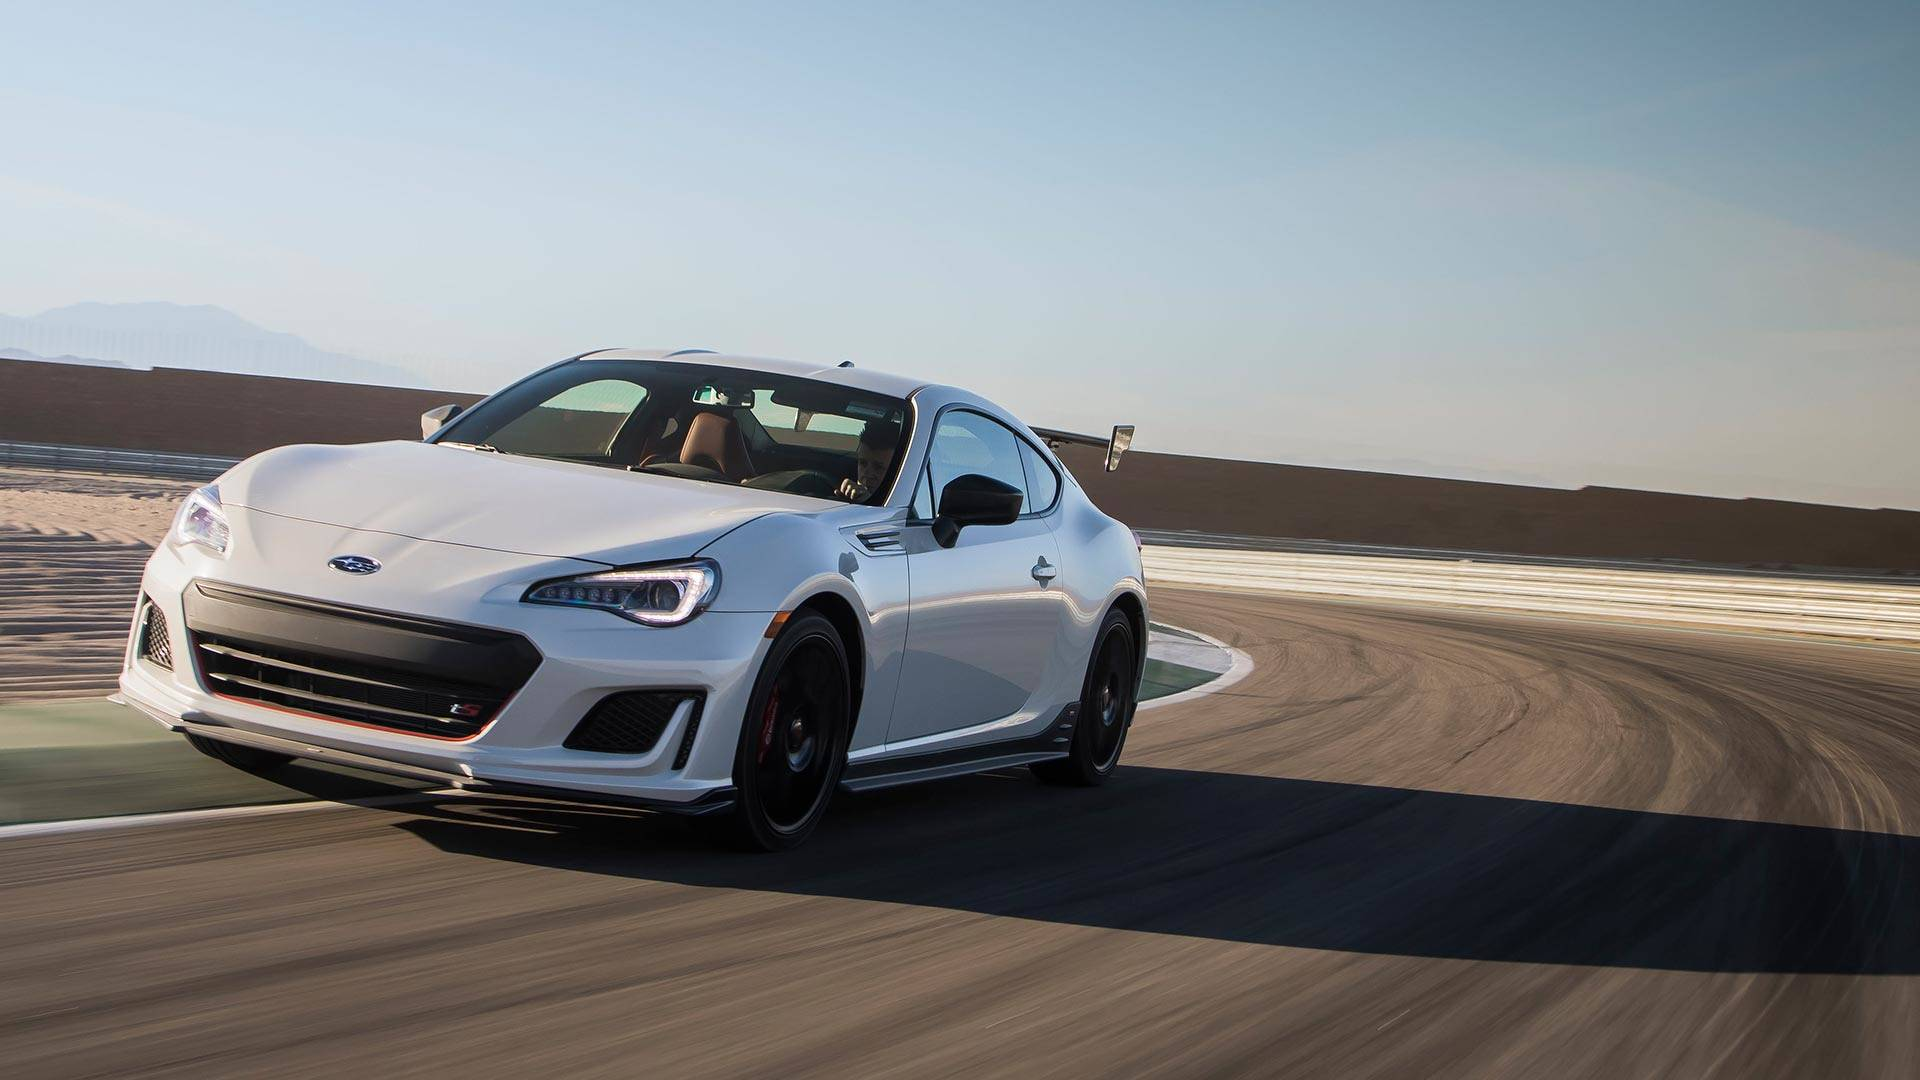 Brz Sti Specs >> Confirmed Subaru Brz Ts Returns For 2020 Costs 32 395